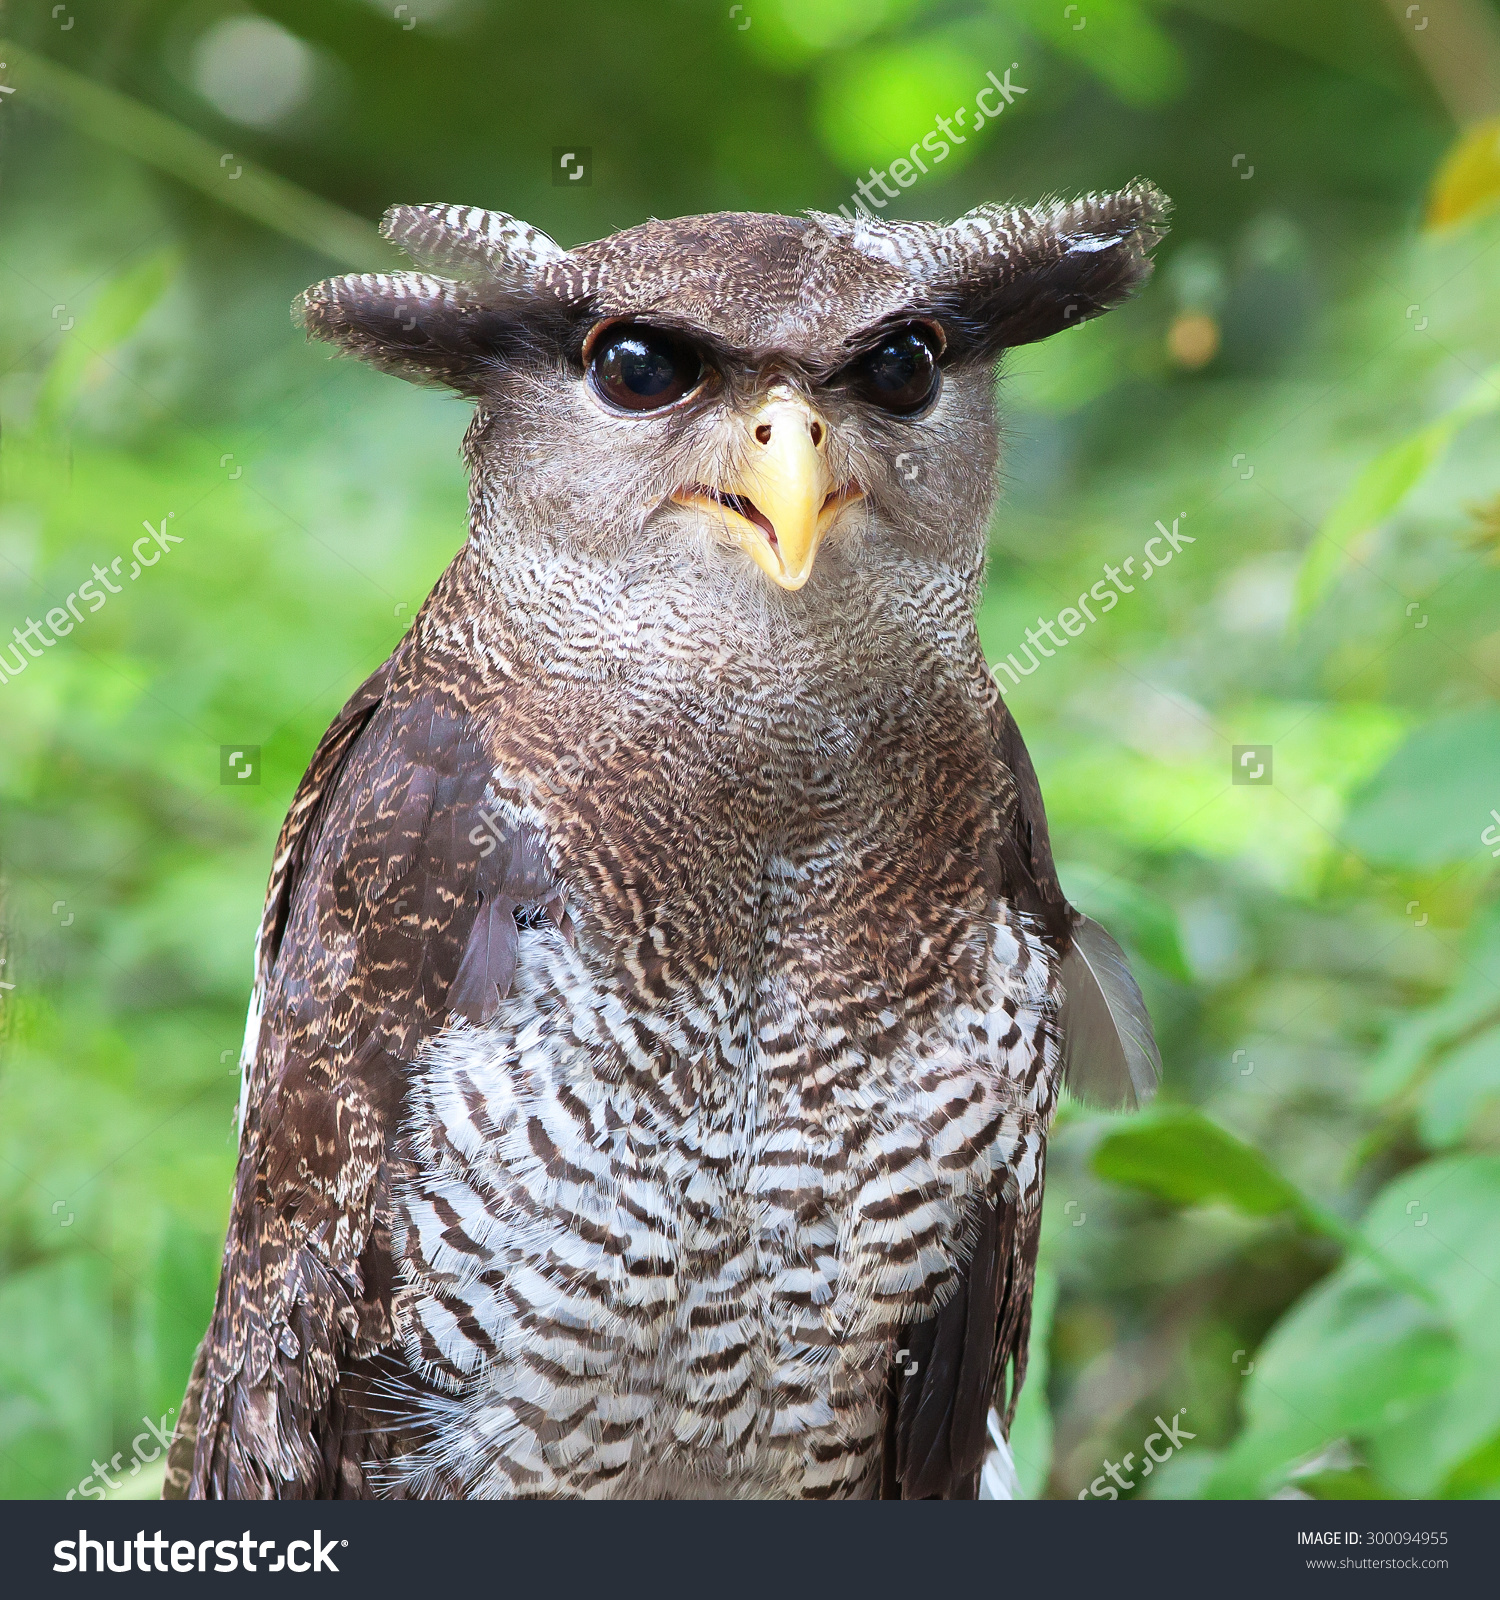 Malay Eagle Owl clipart #19, Download drawings